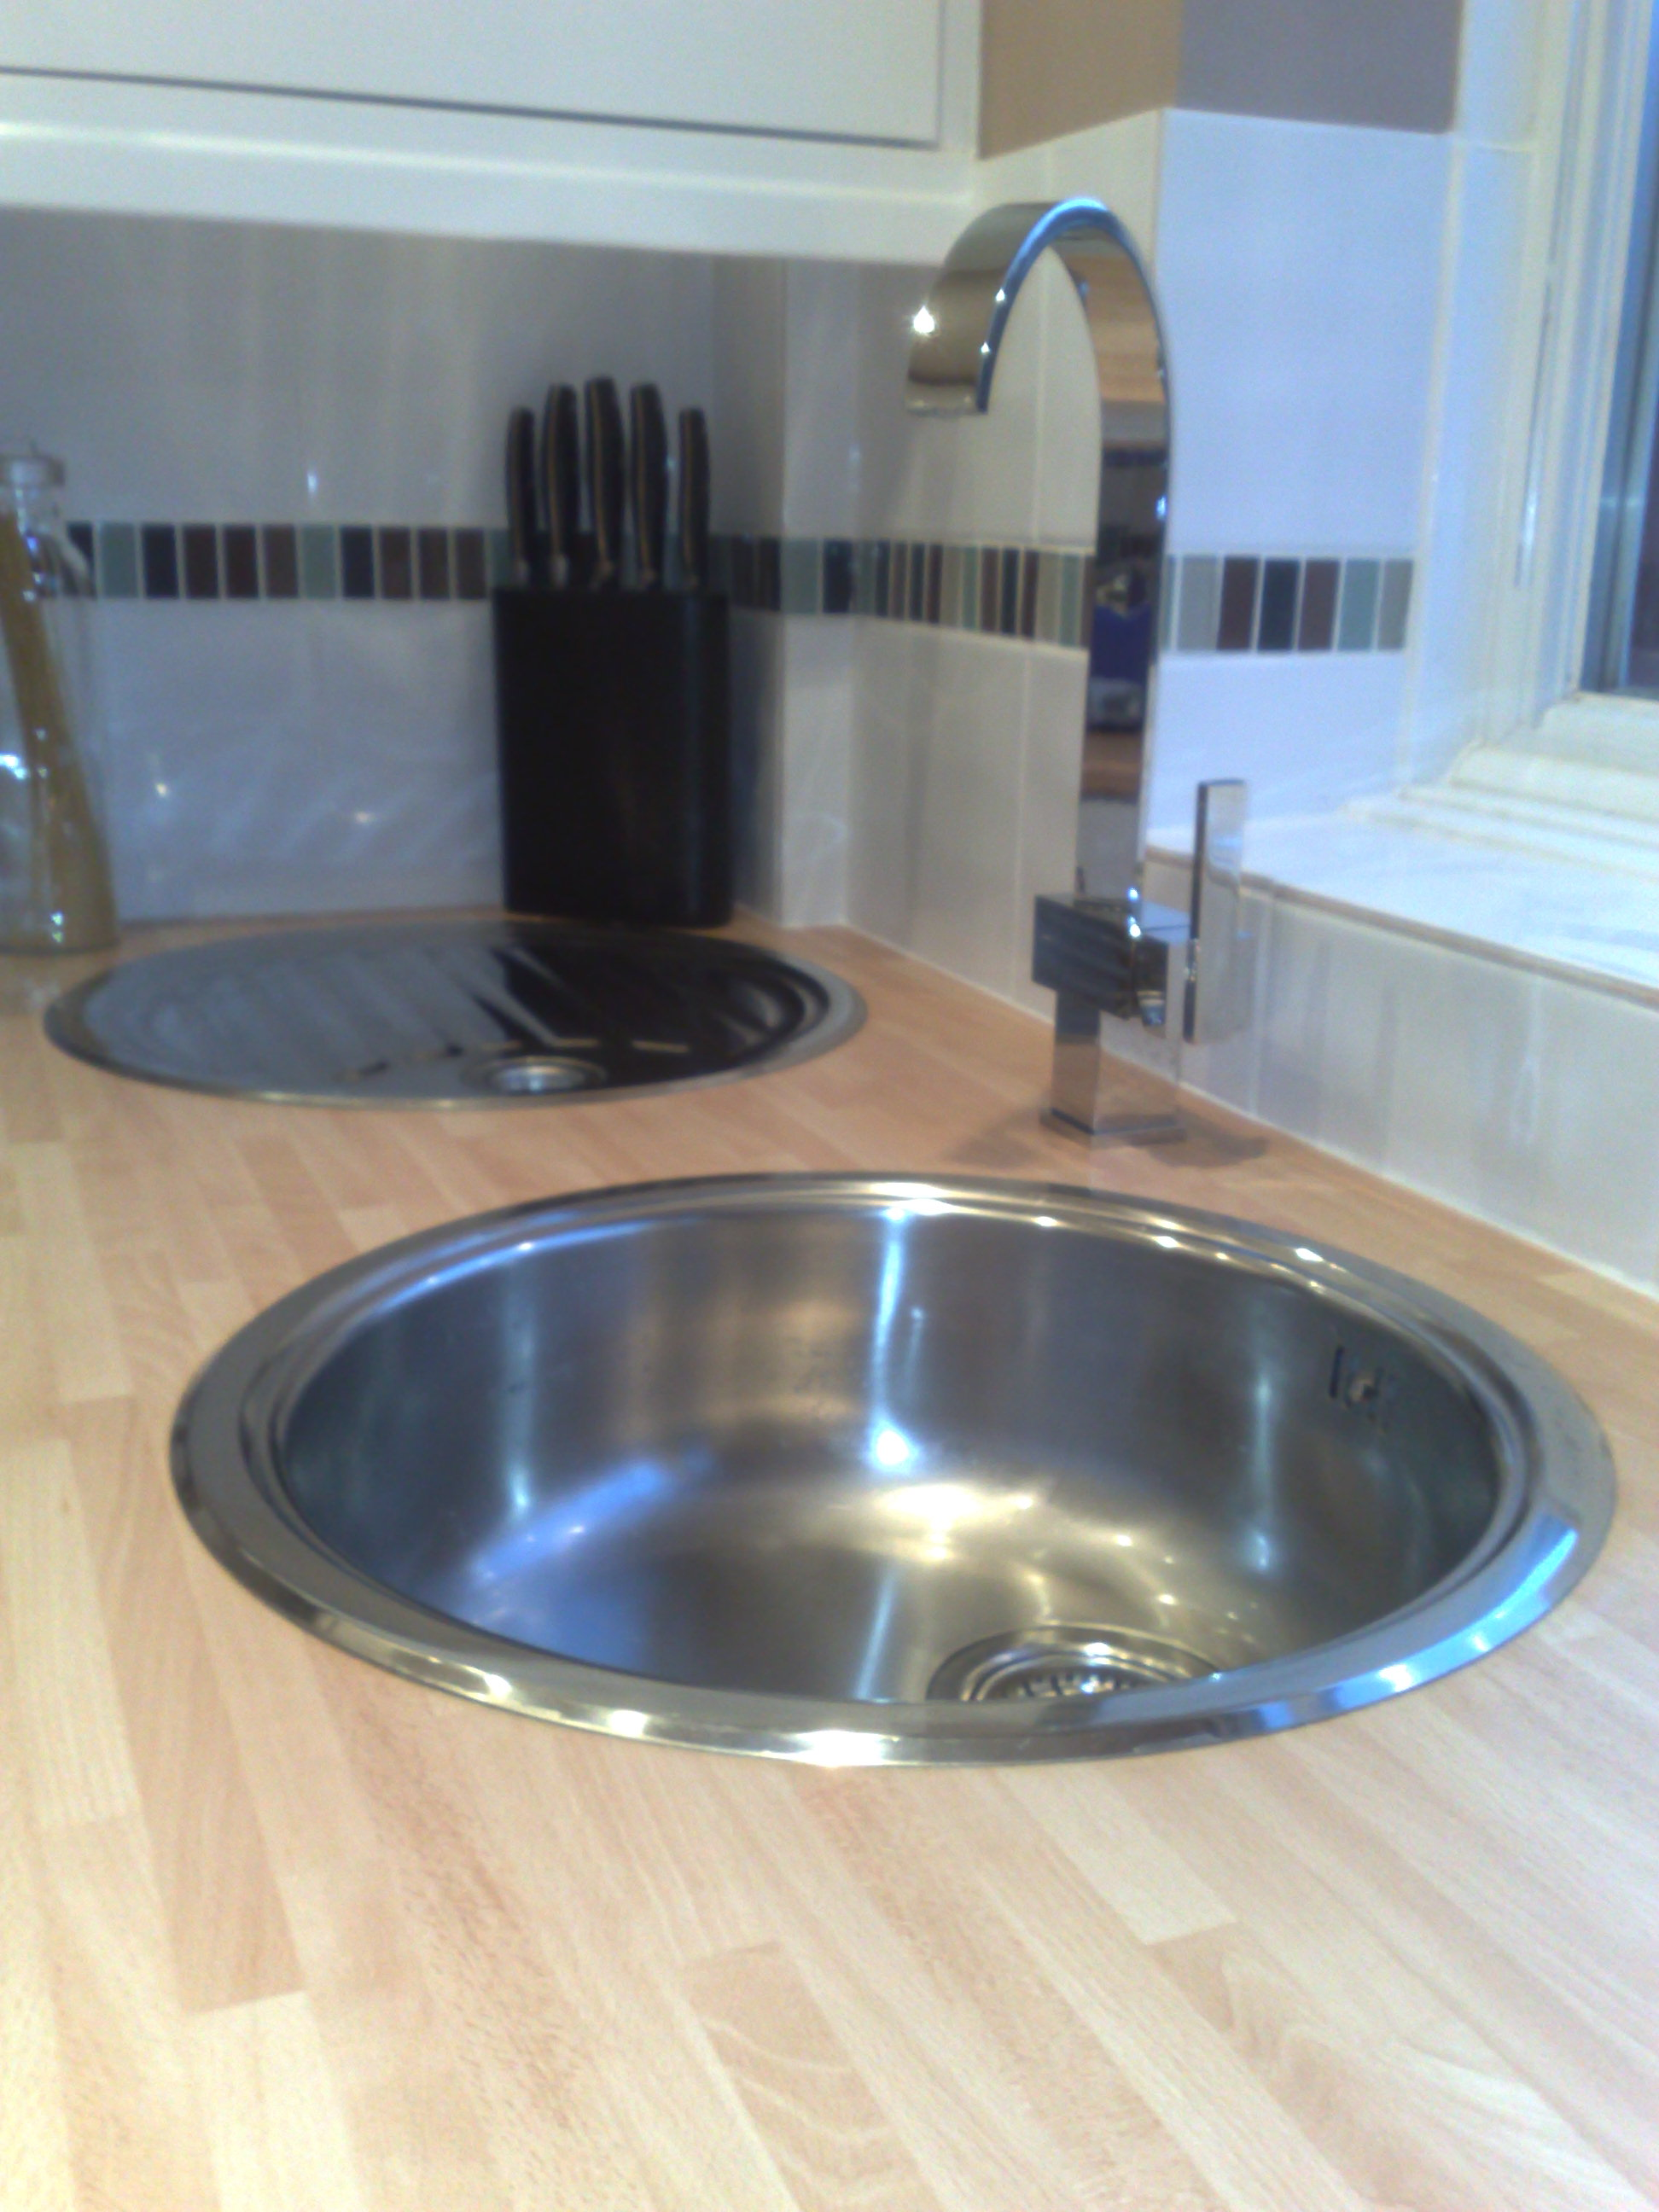 Separate Circular Bowl and Drainer.